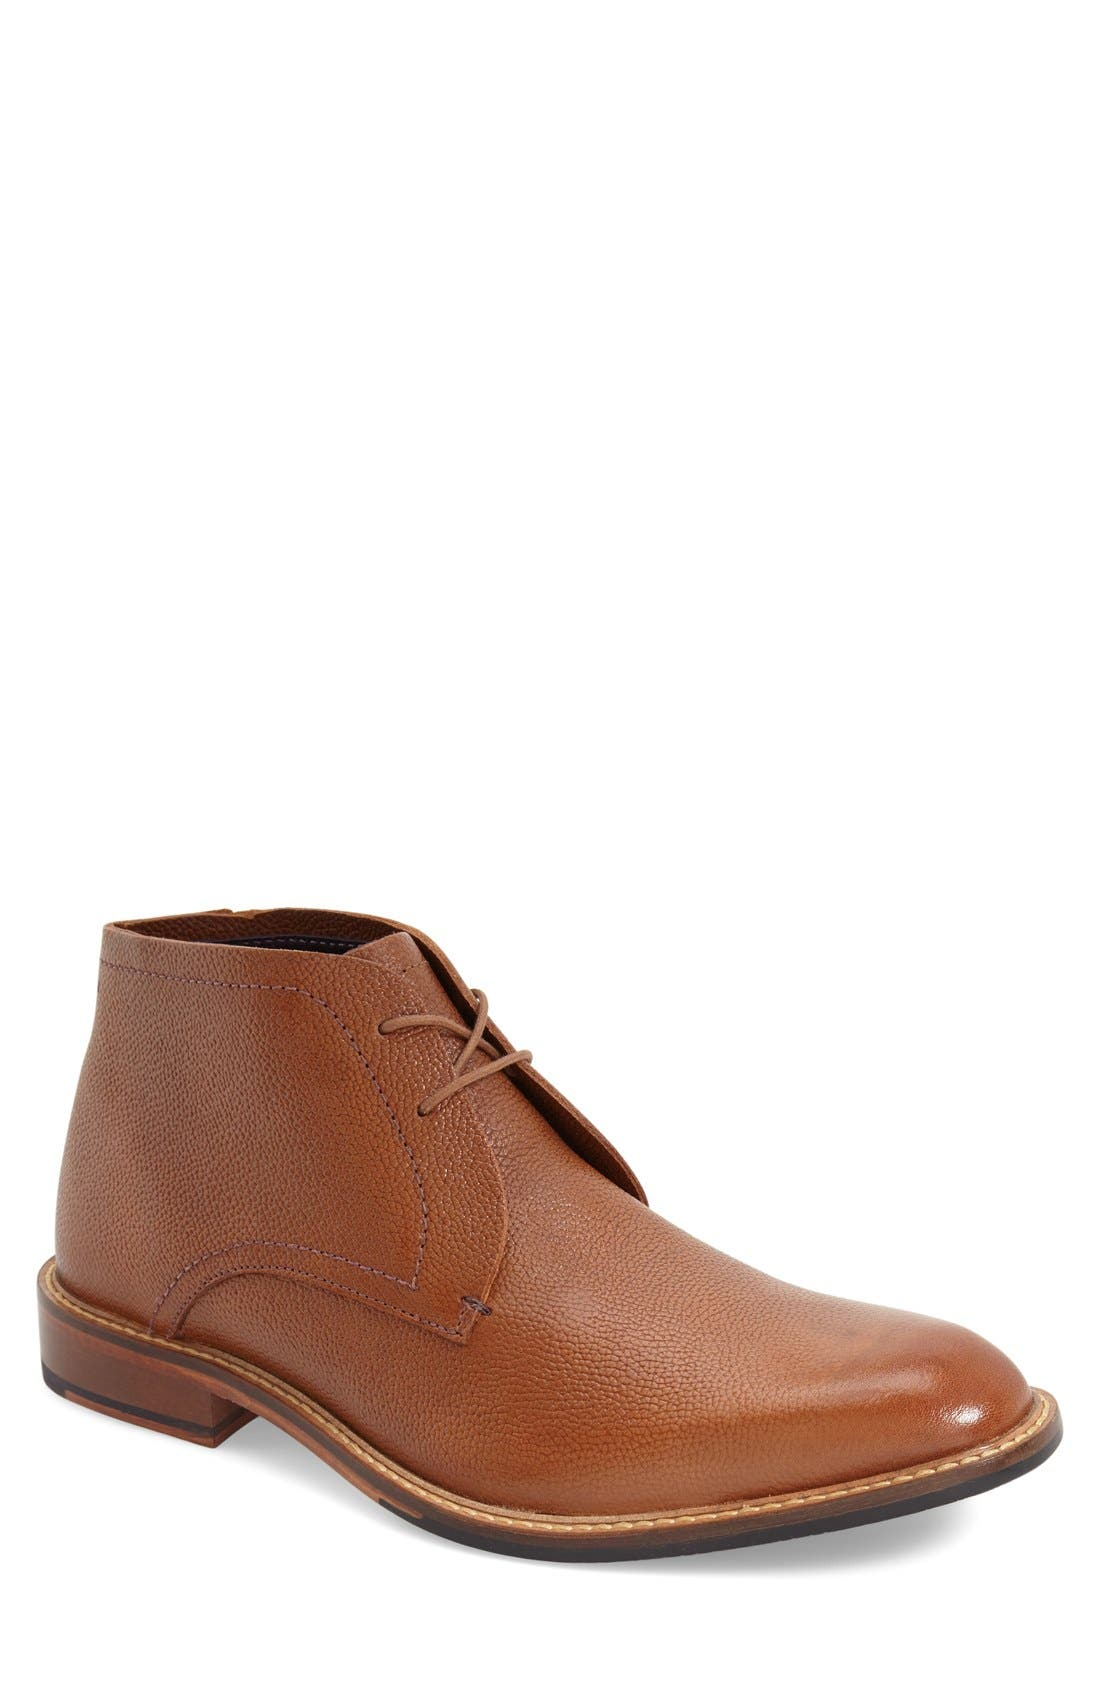 'Torsdi 4' Chukka Boot,                             Main thumbnail 1, color,